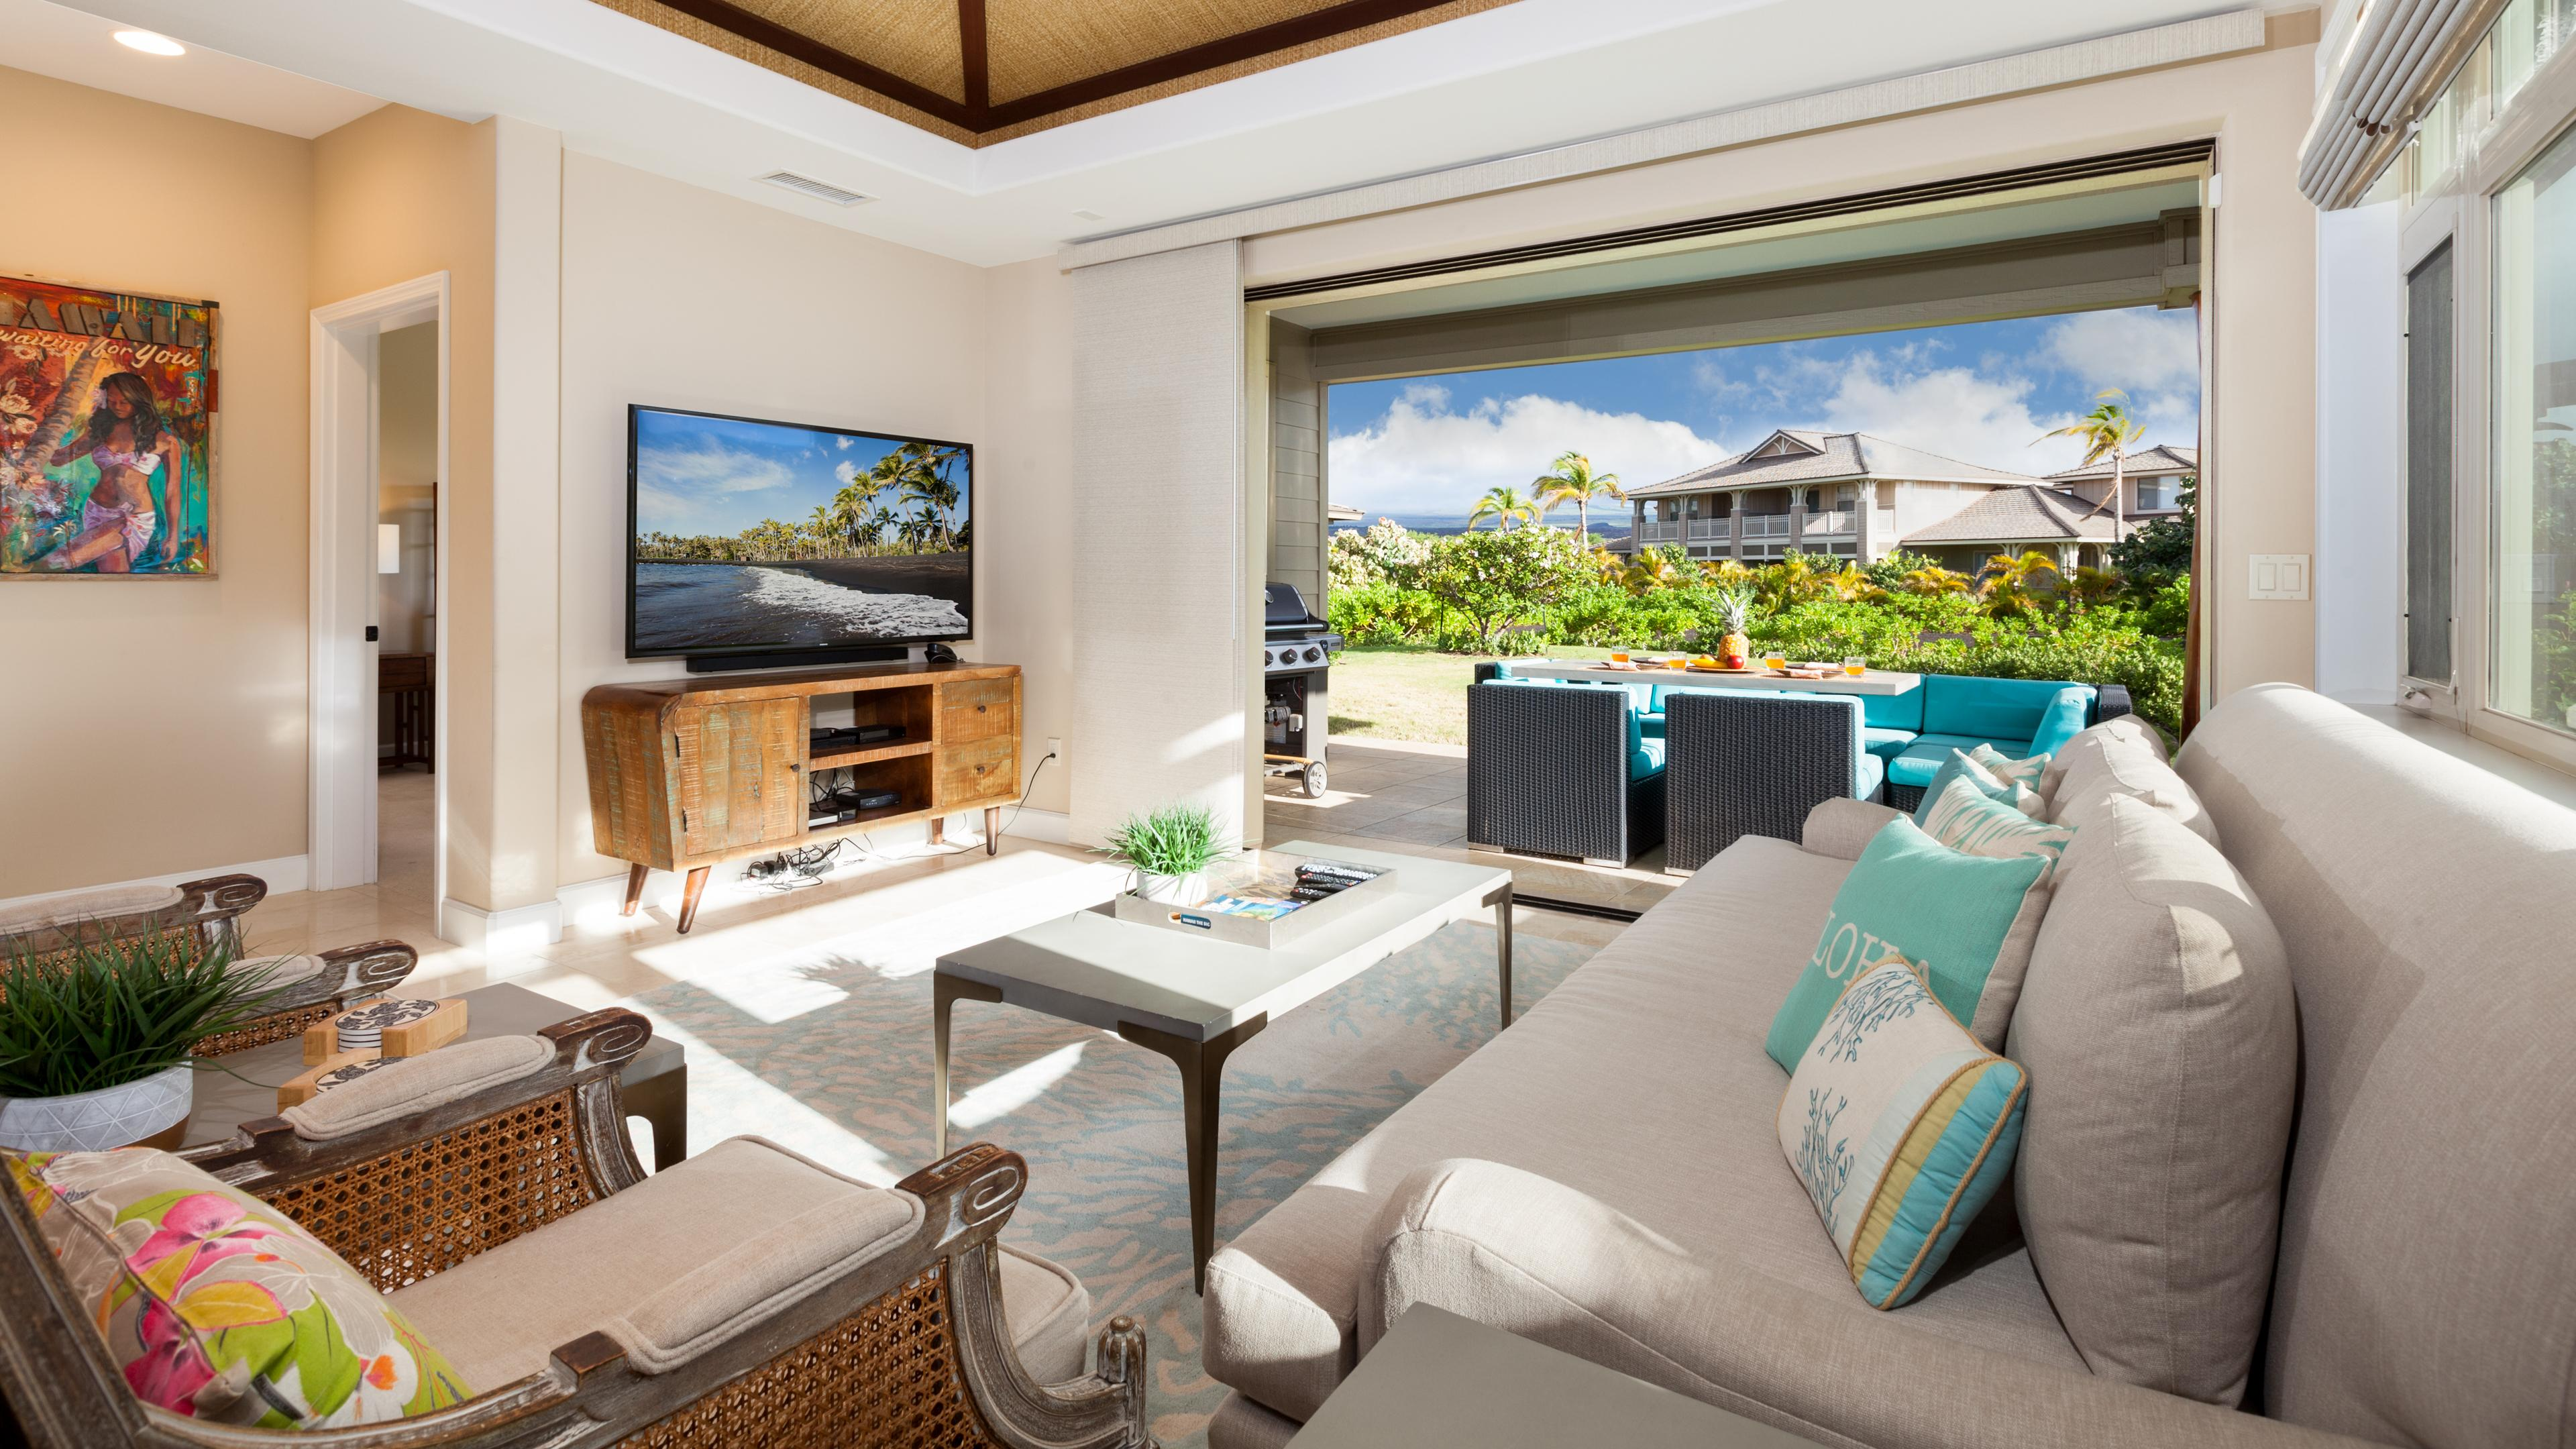 Large living room with pocket door to lanai outdoor dining and living area